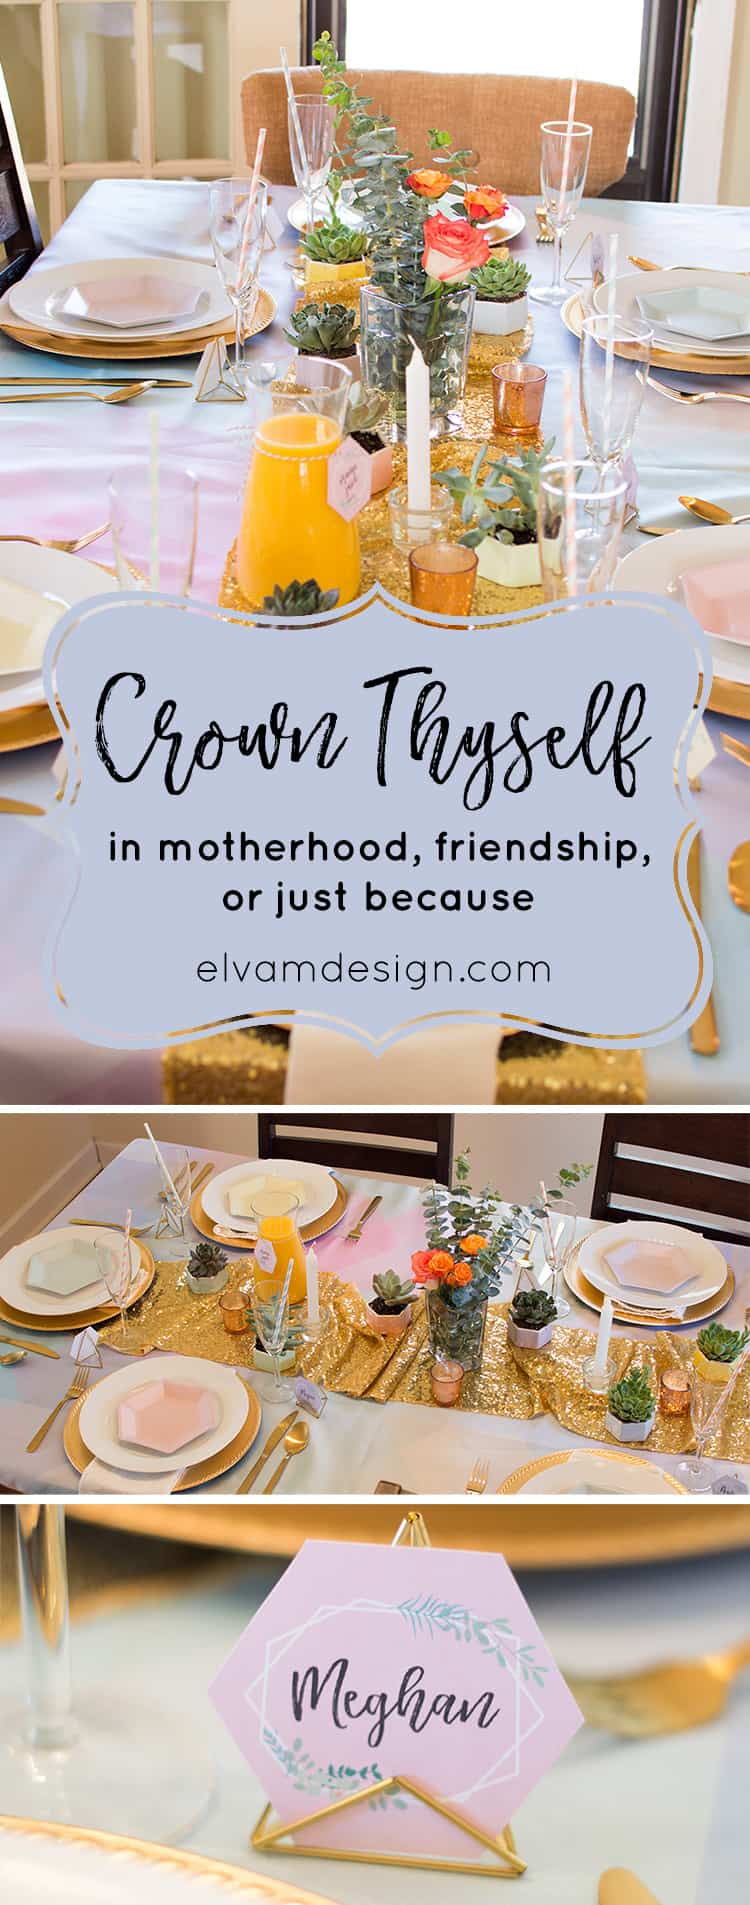 Crown Thyself in Motherhood, Friendship, or Just Because at this Brunch party styled by Elva M Design Studio.